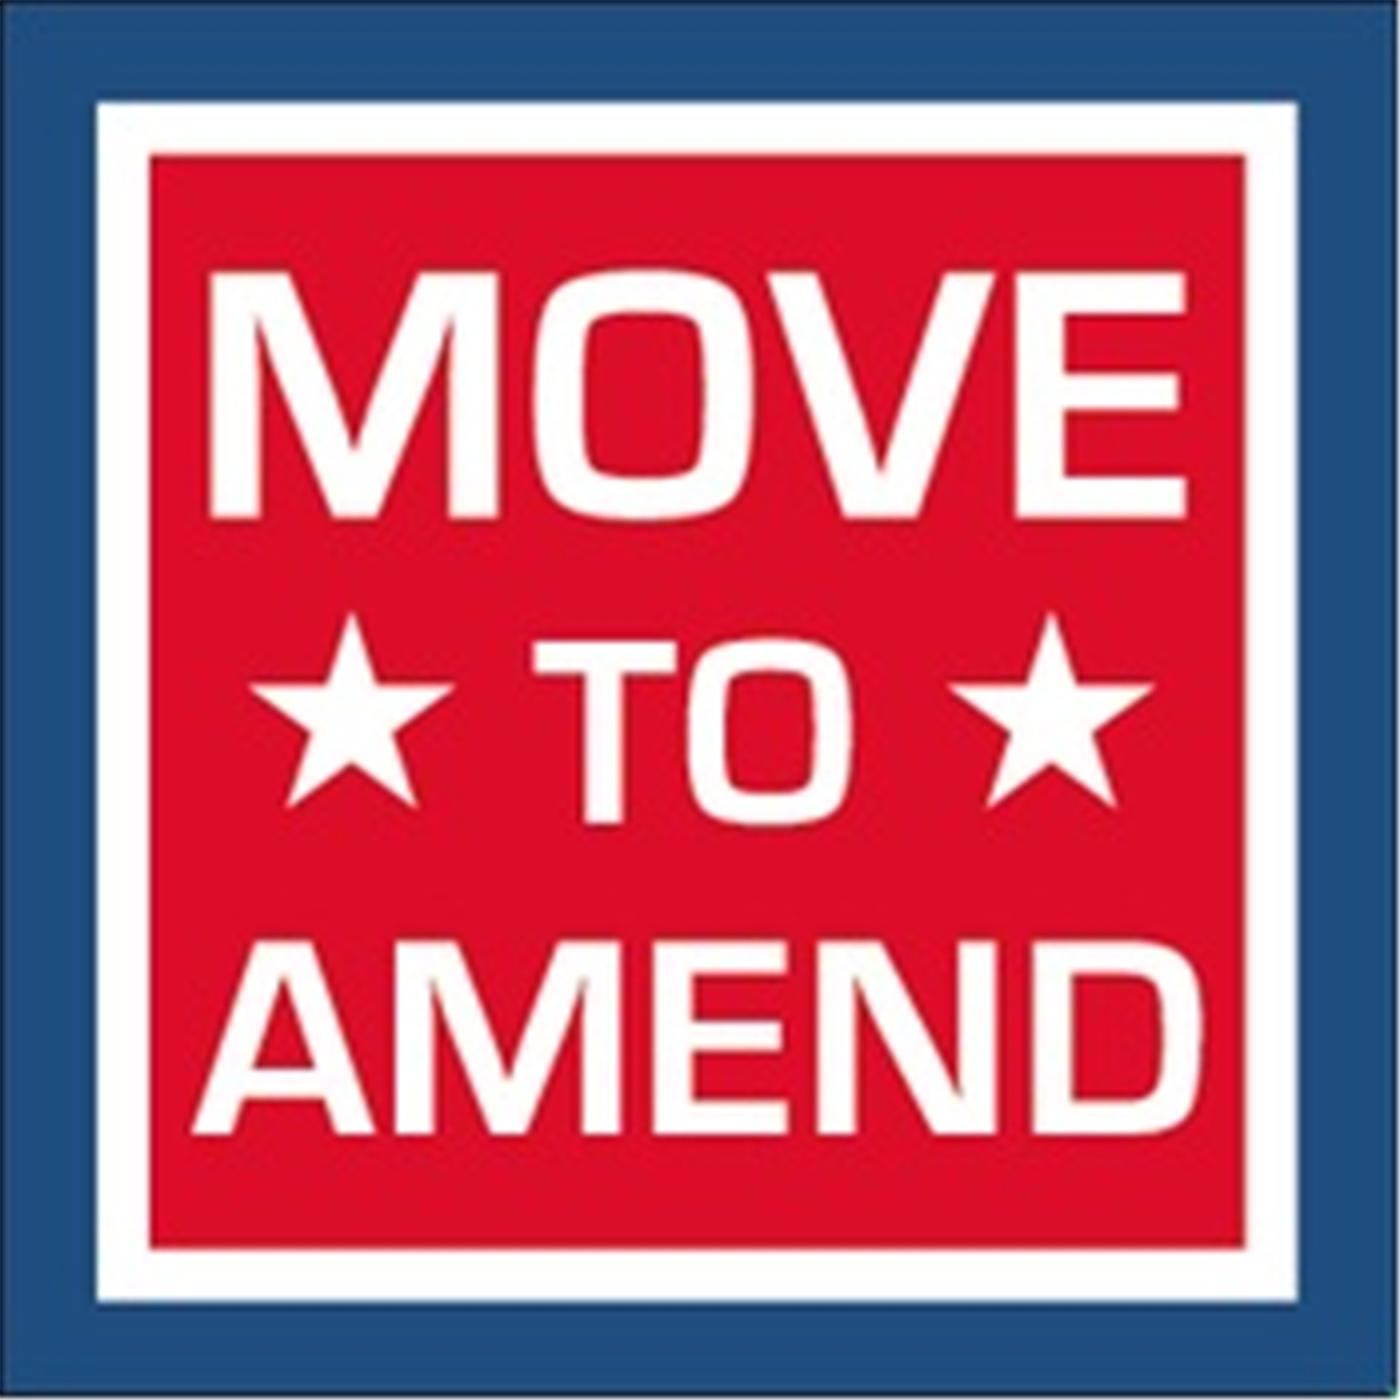 Move to Amend Reports